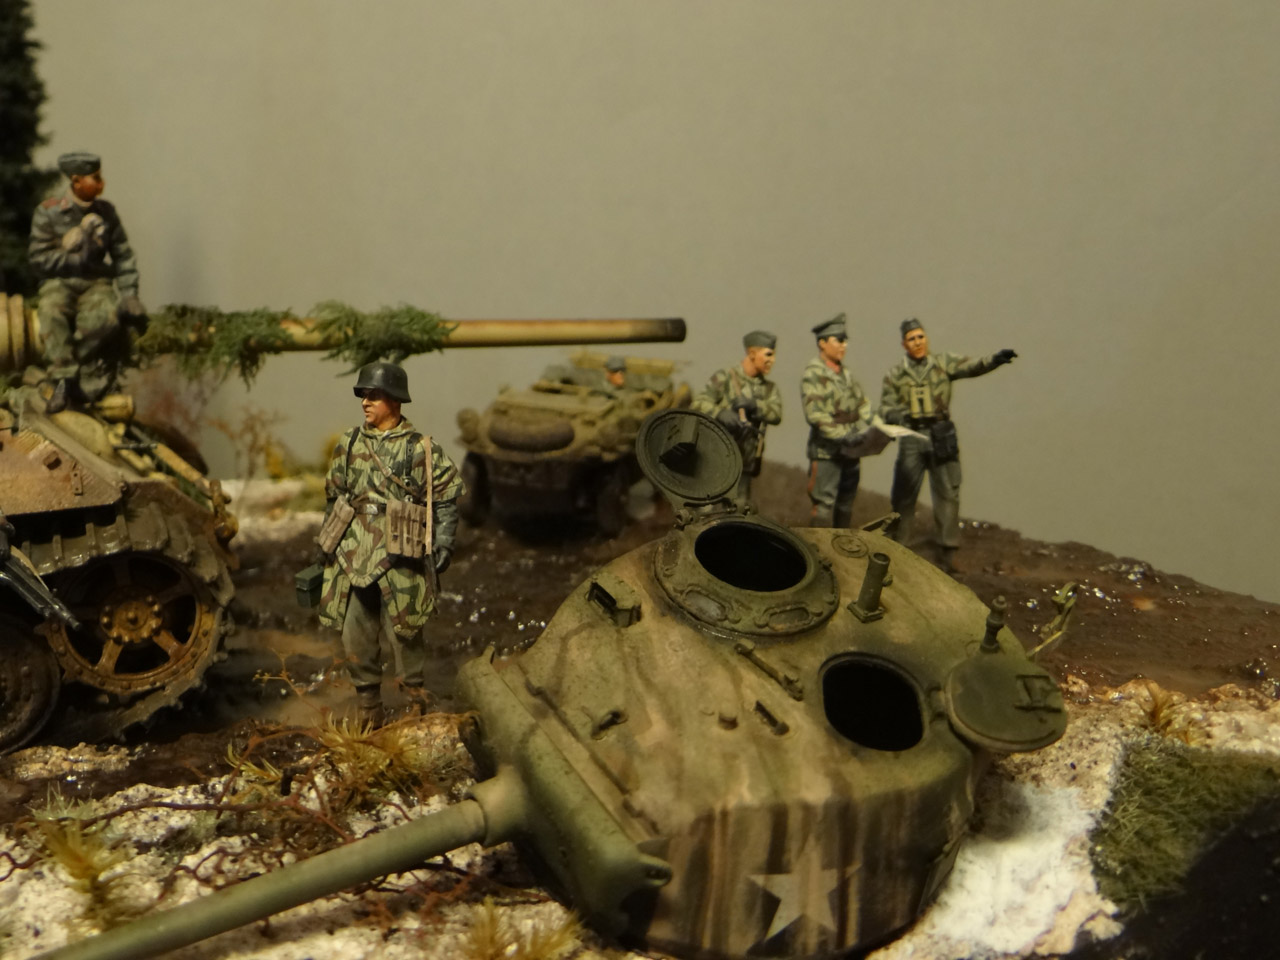 Dioramas and Vignettes: The Western Front, photo #4